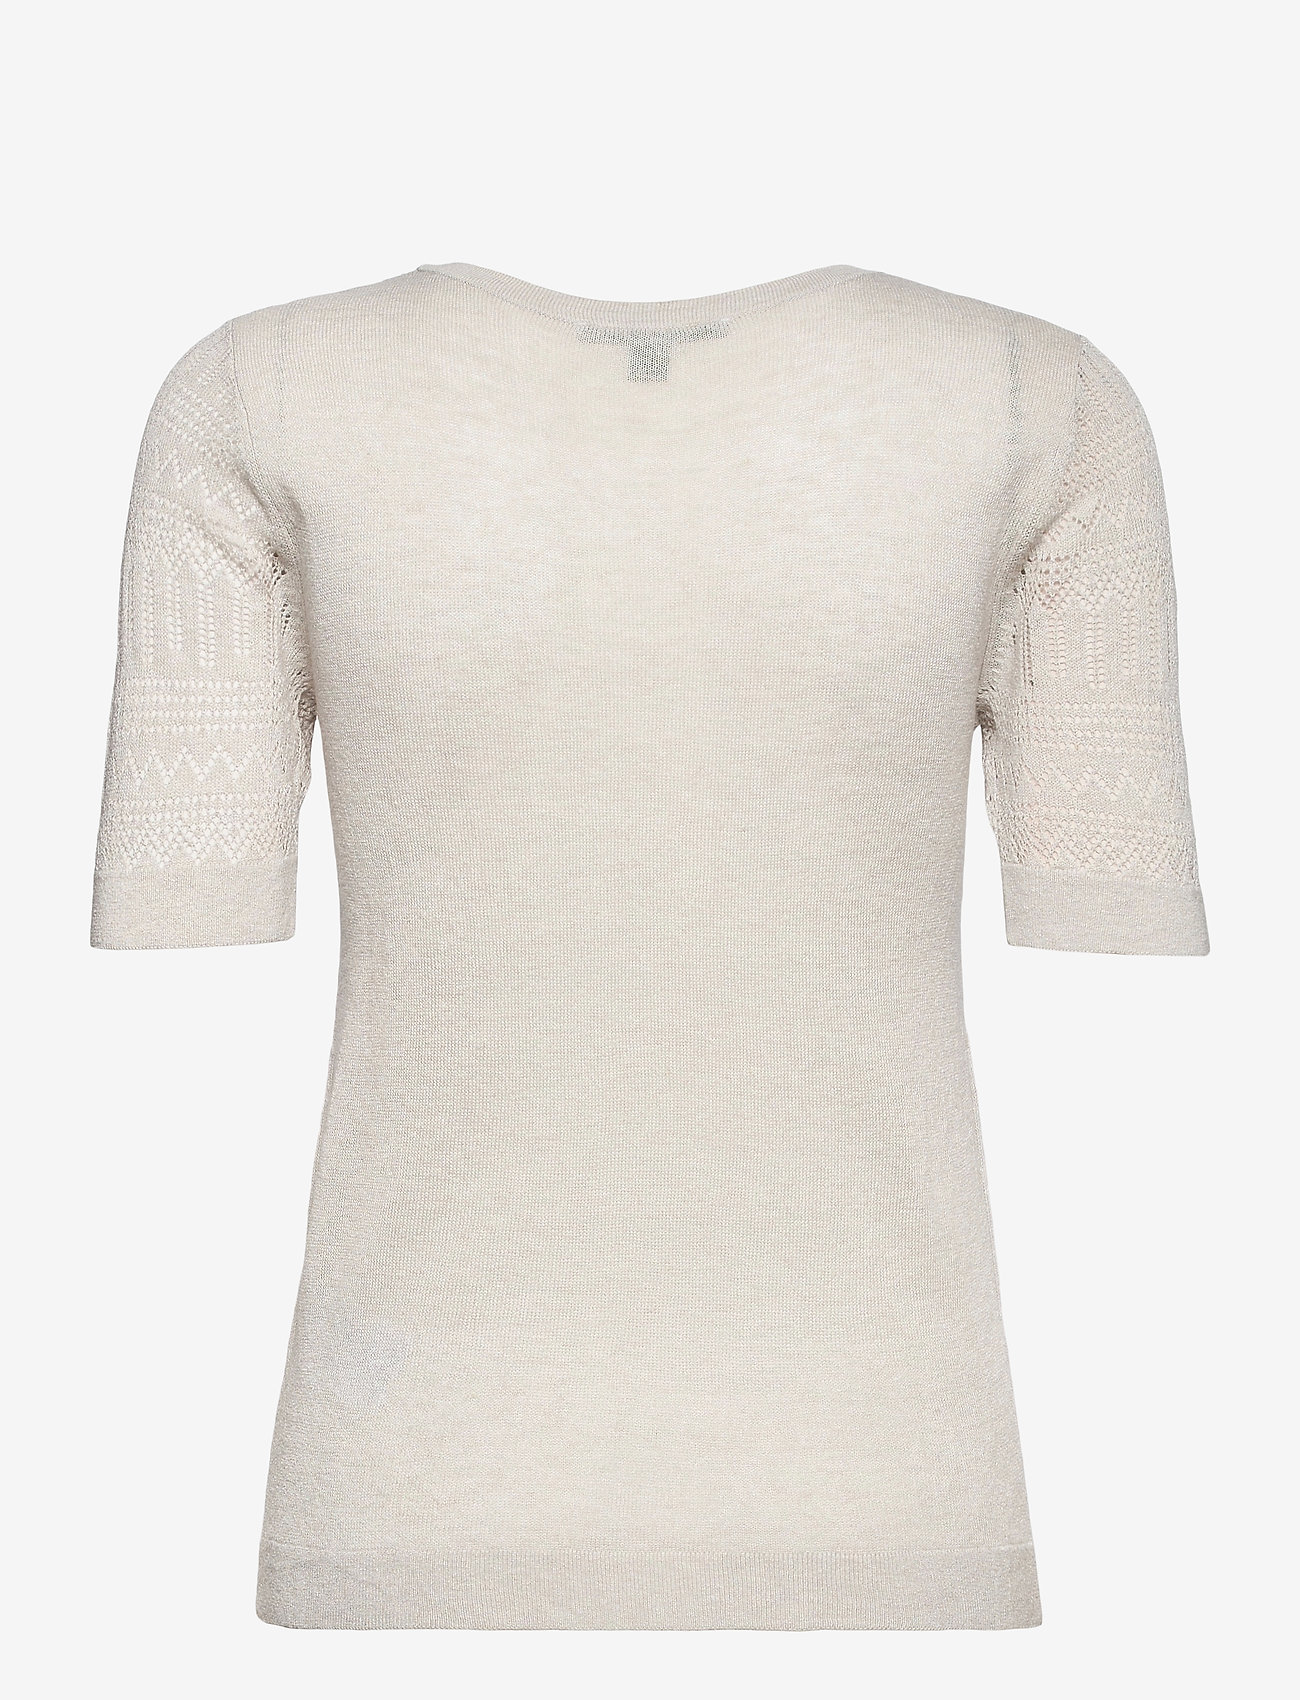 Esprit Collection - Sweaters - strikkede toppe - off white - 1